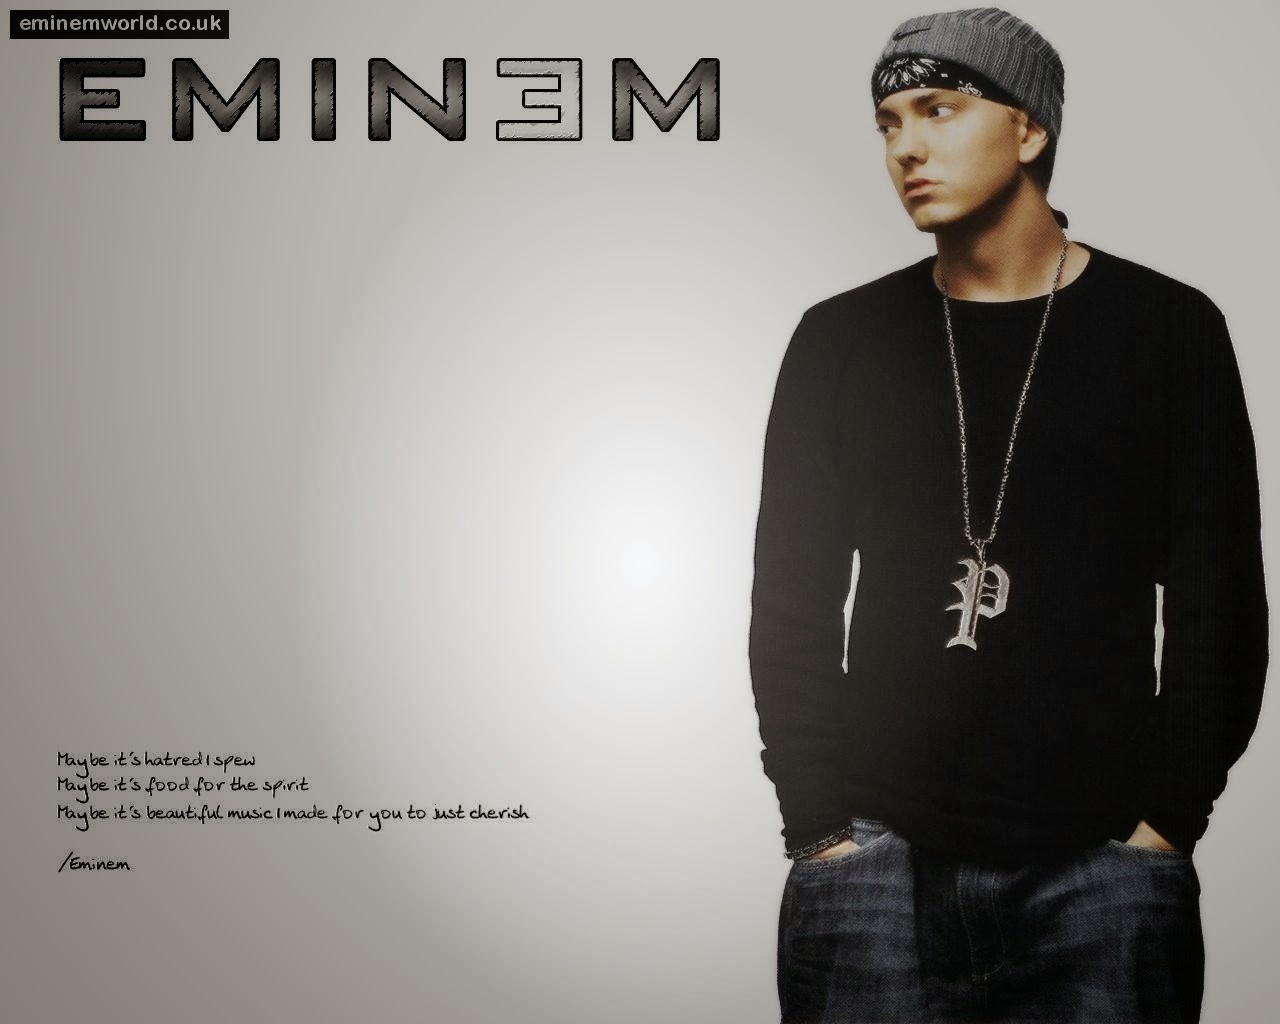 a report on the career and music of eminem an american rapper Marshall bruce mathers iii, best known by his stage name eminem, is an american rapper, songwriter, record producer, and actor in addition to his solo career, eminem is a member of the group d12, as well as one half of the hip hop duo bad meets evil, alongside royce da 5'9.